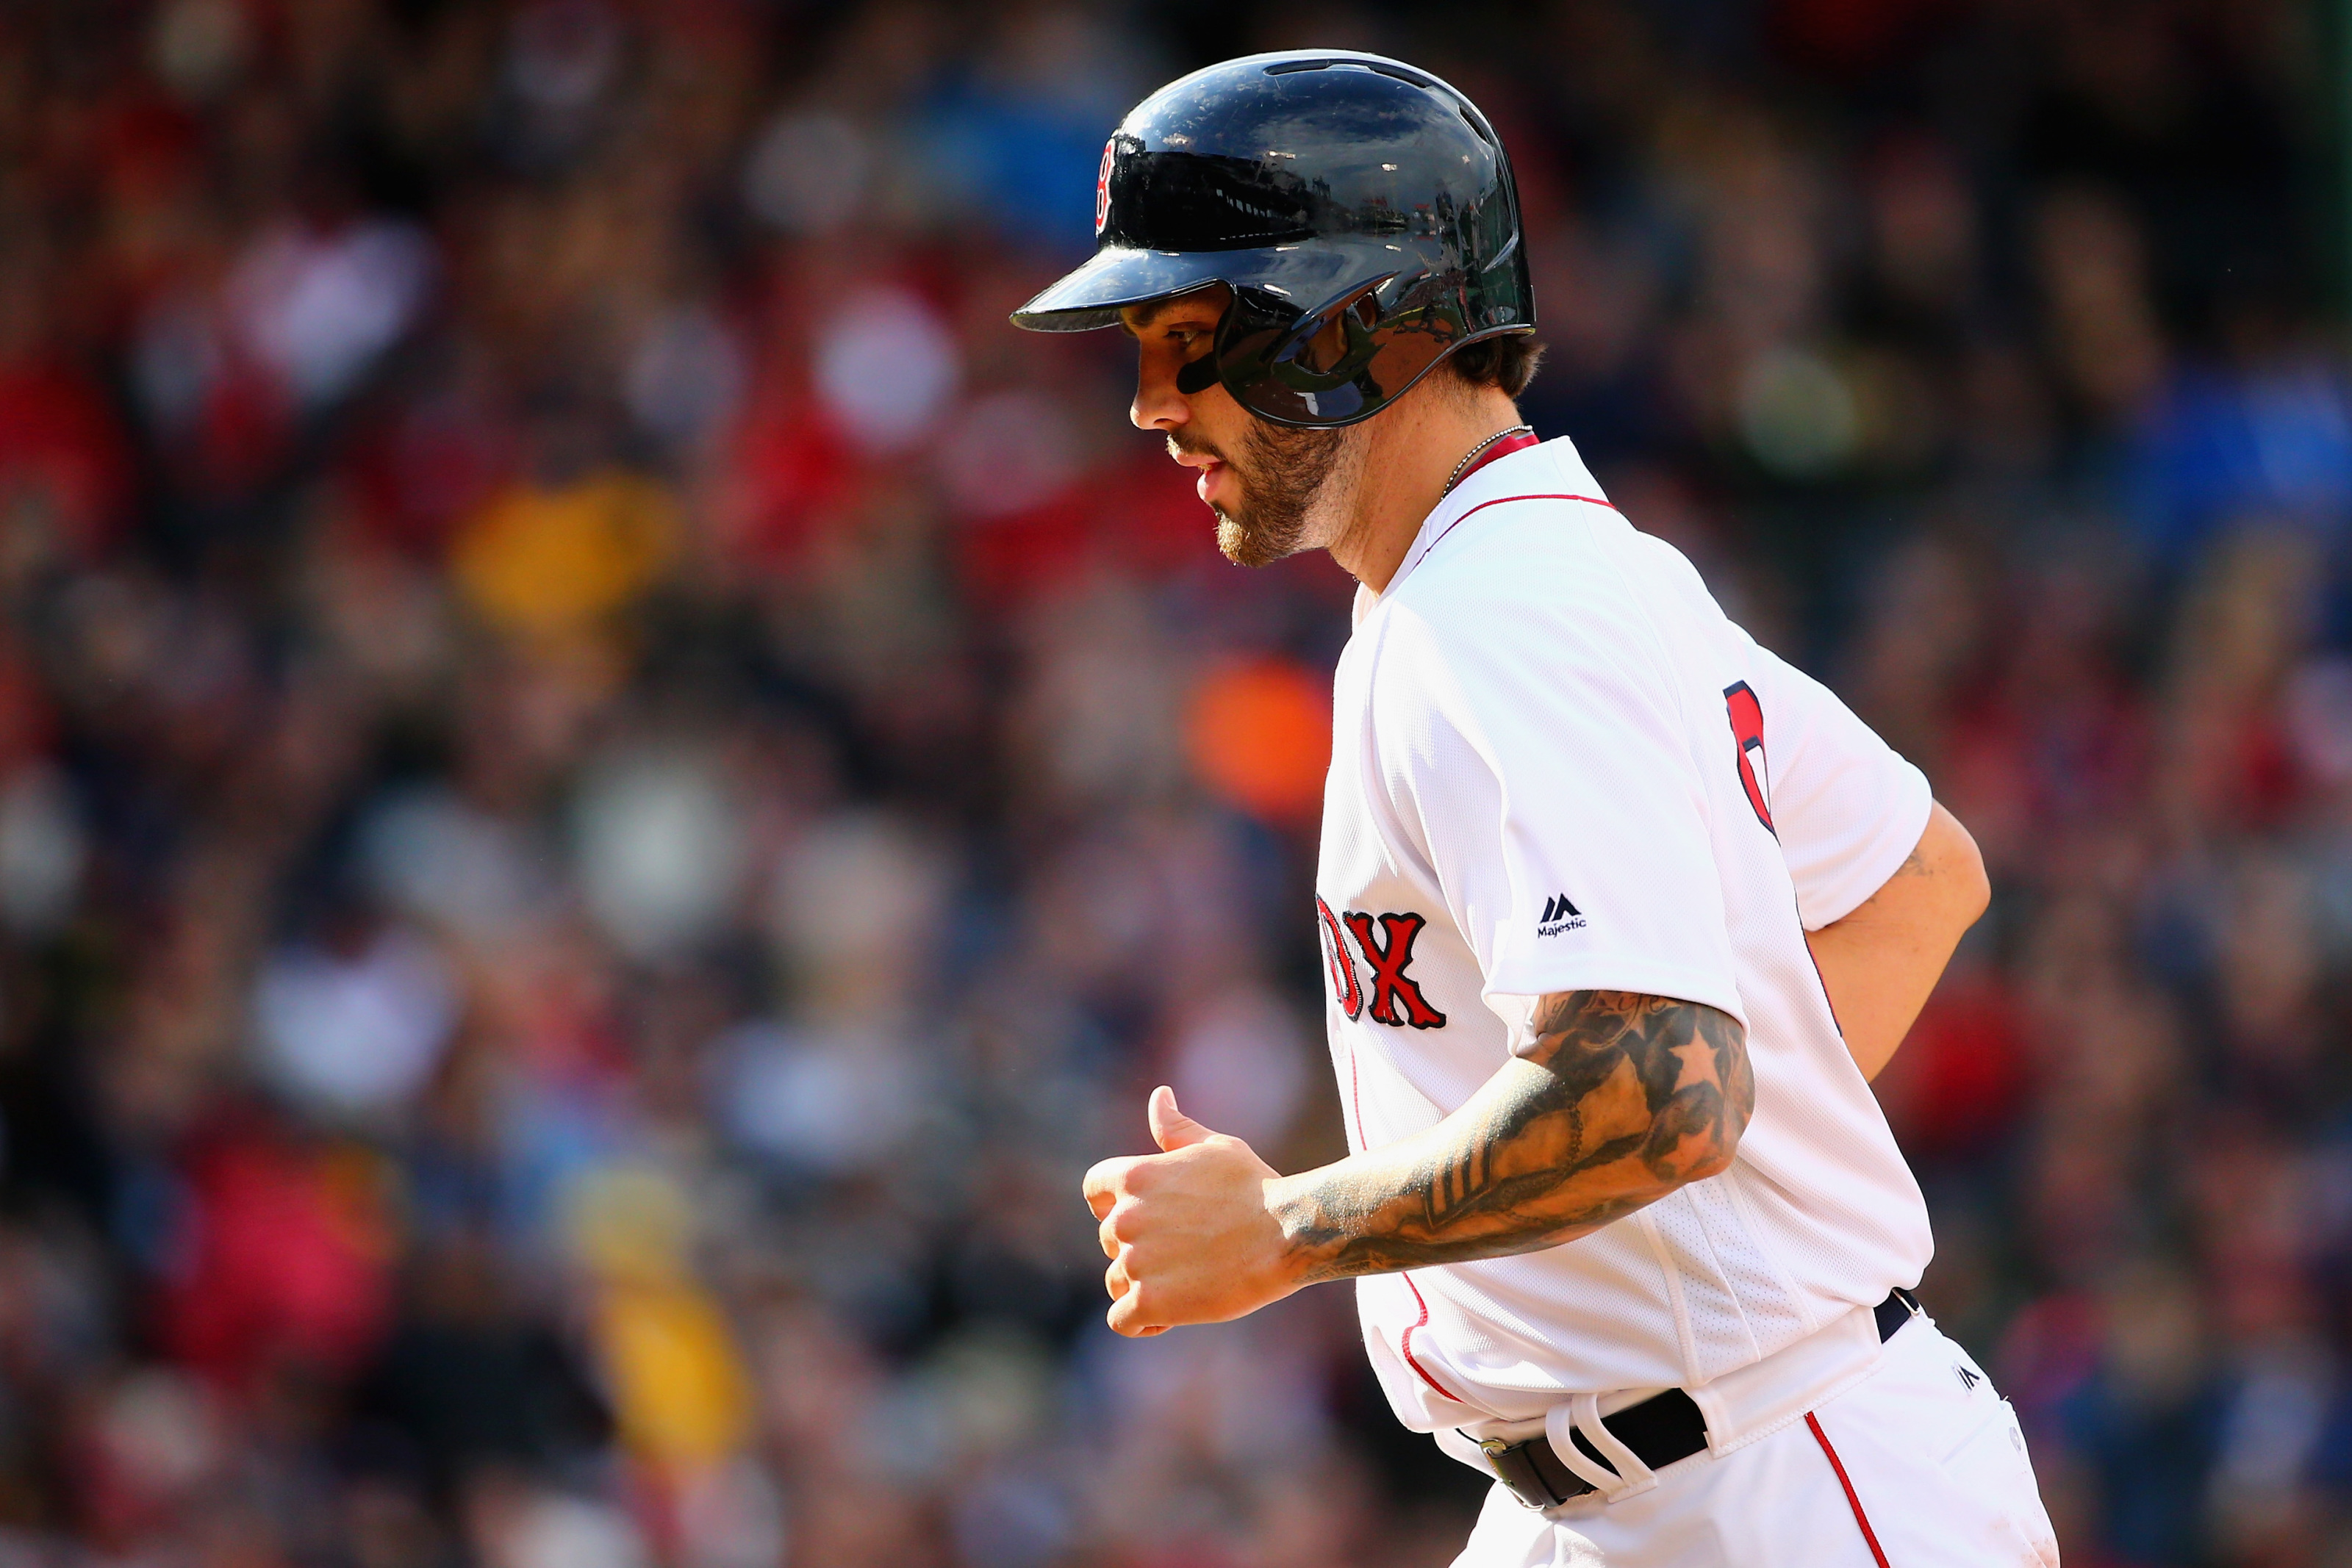 Boston Red Sox: It's time to get rid of Blake Swihart